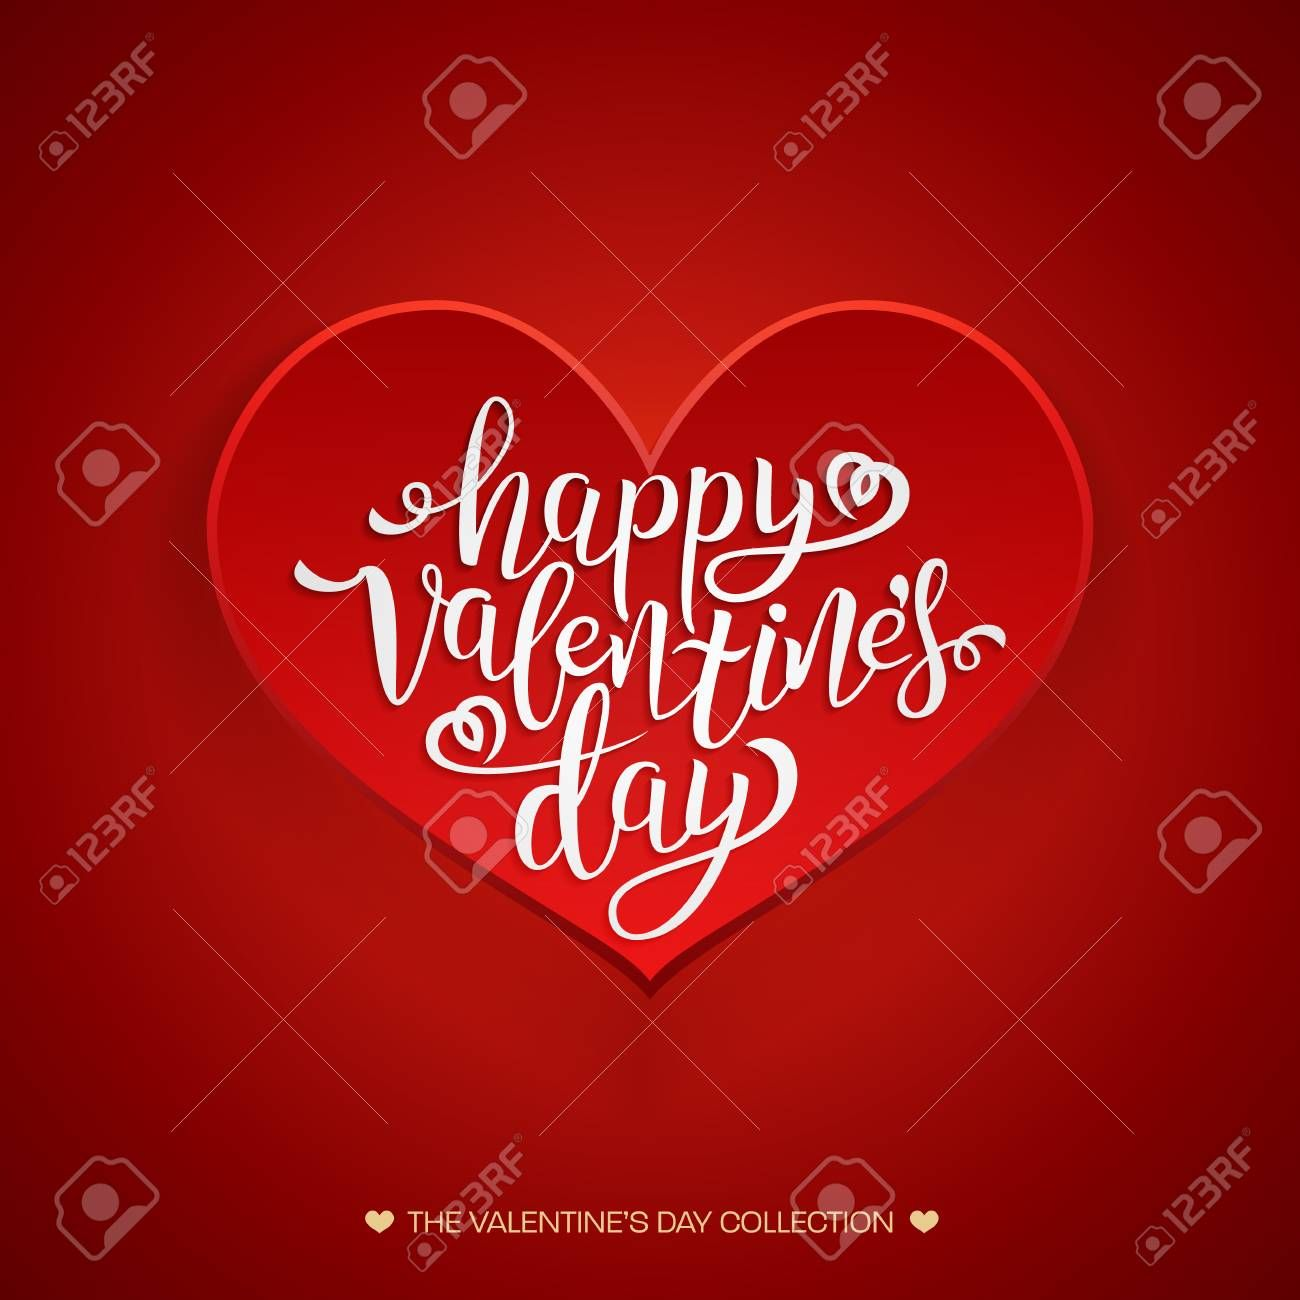 Recipes Directory Valentines Cards Valentine Card Images Valentine Card Template